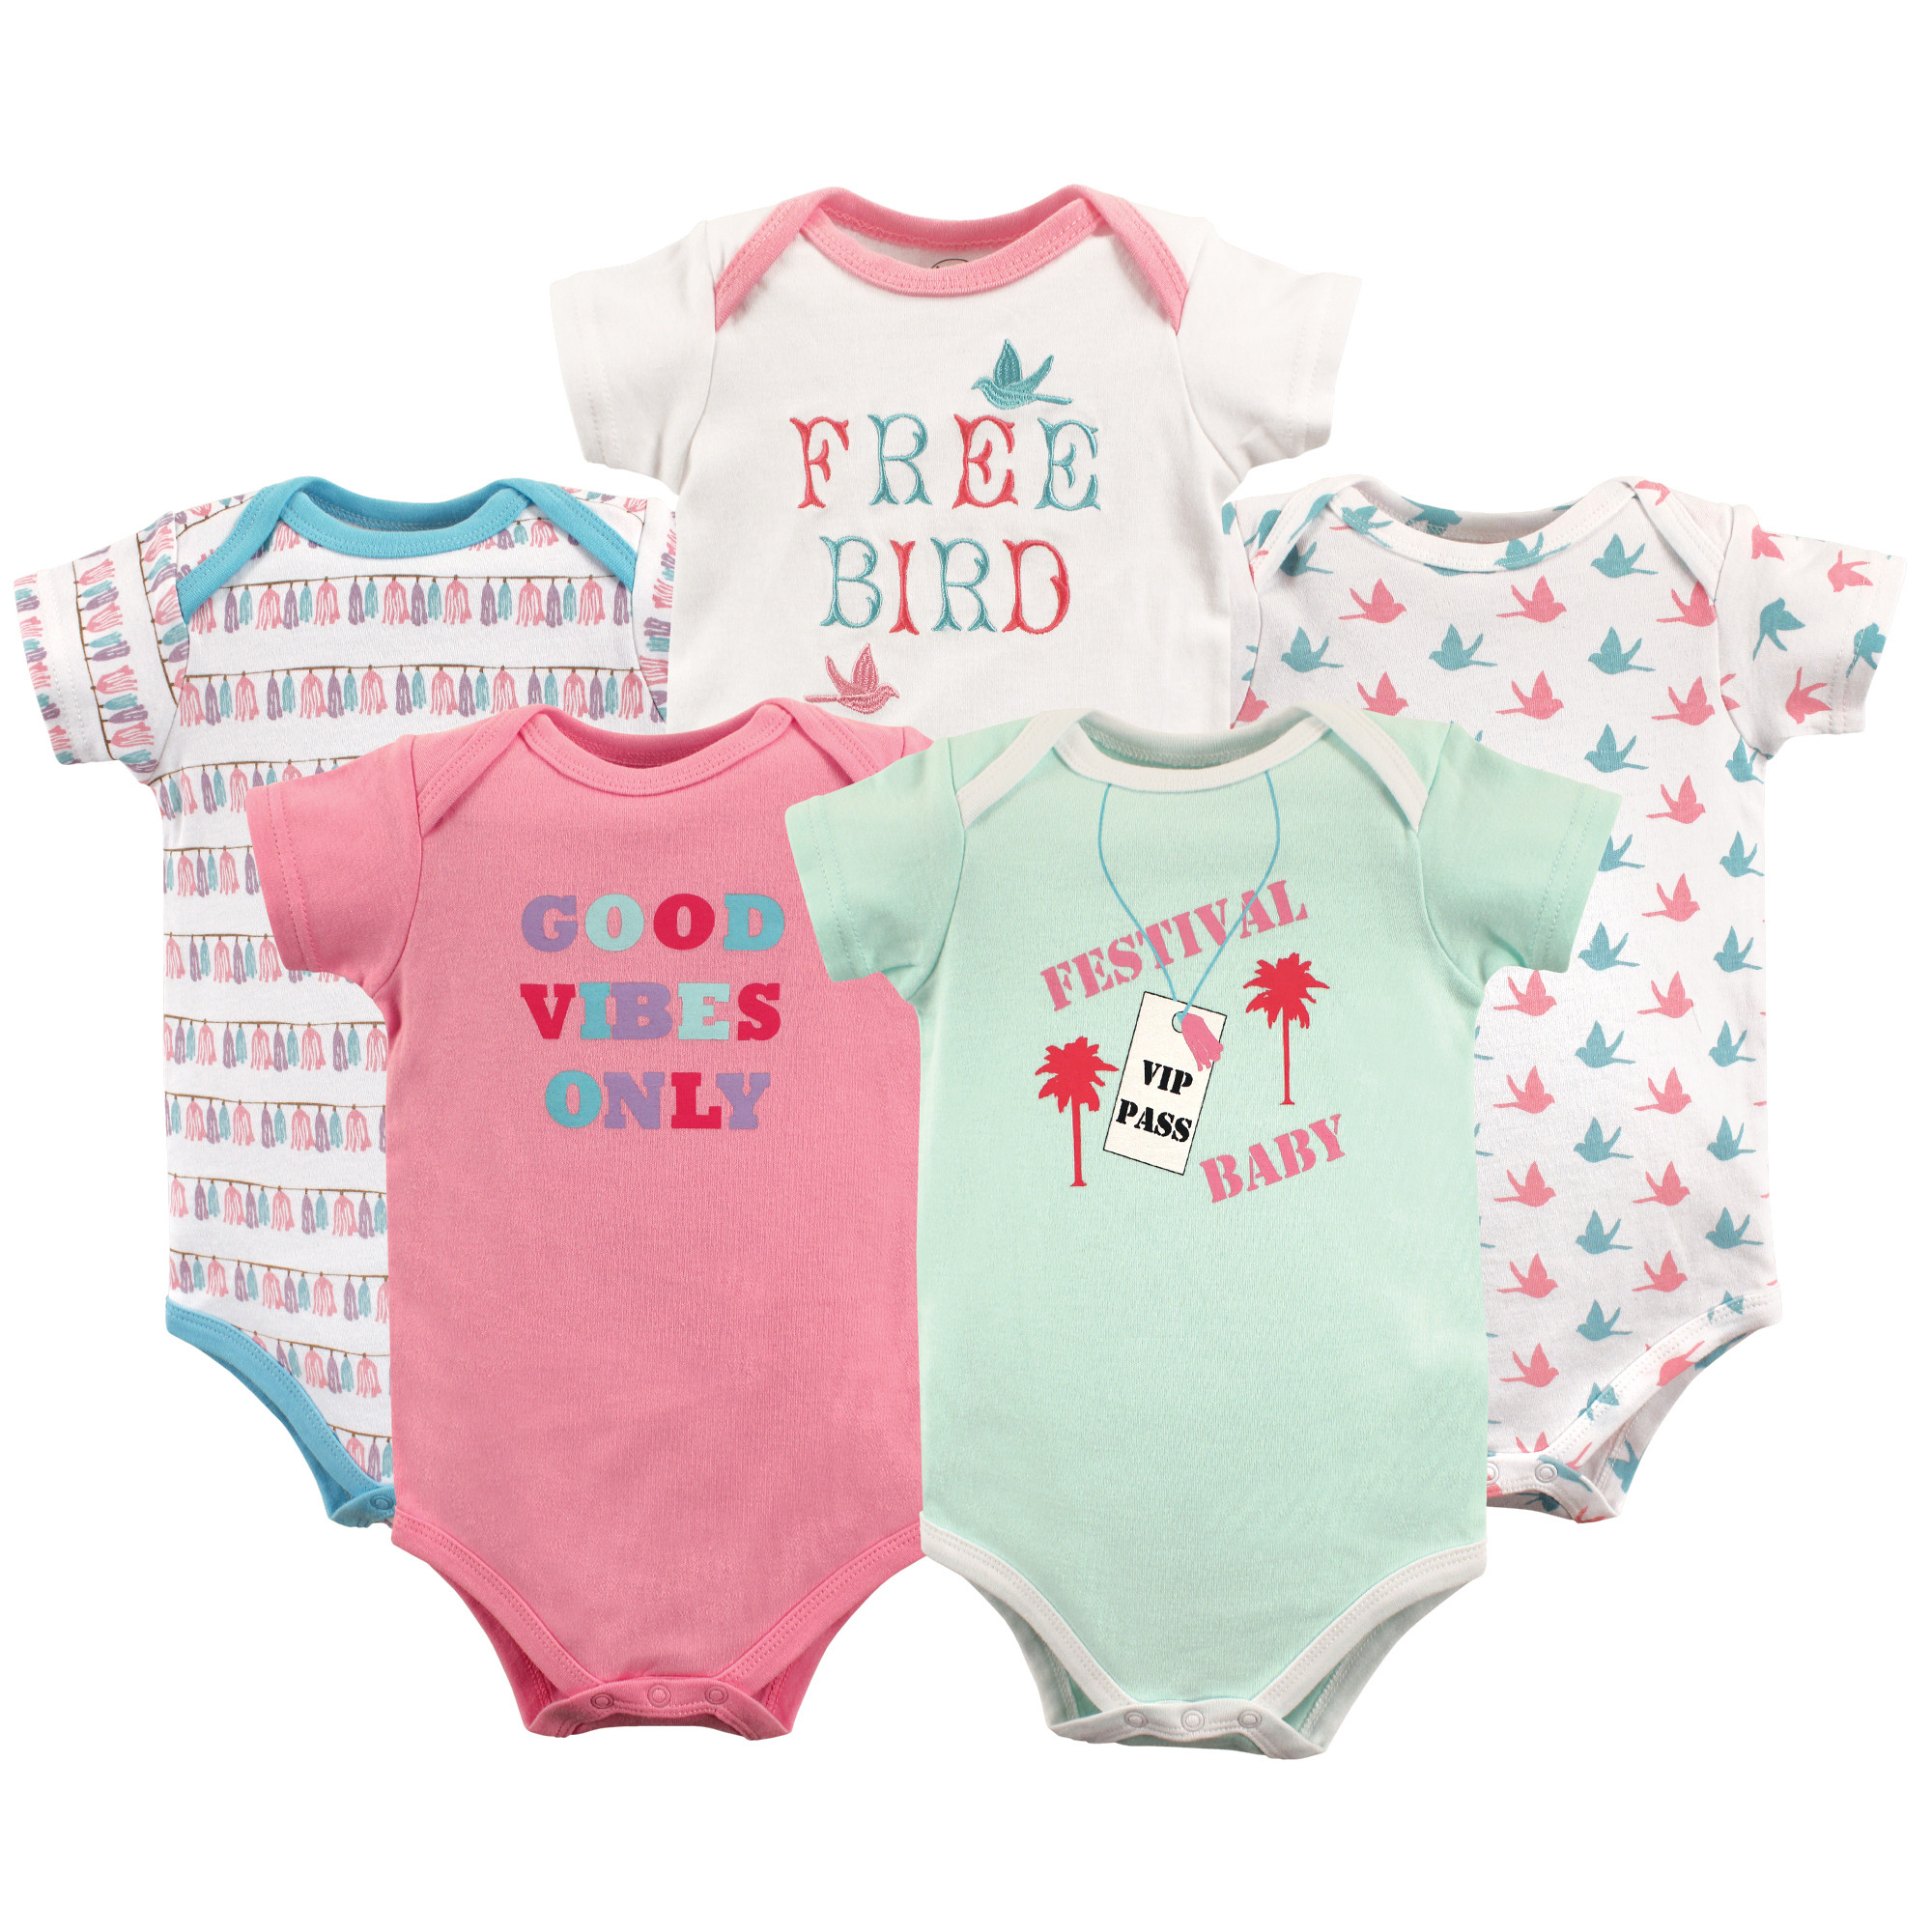 0f5403711 Luvable Friends - Baby Bodysuits